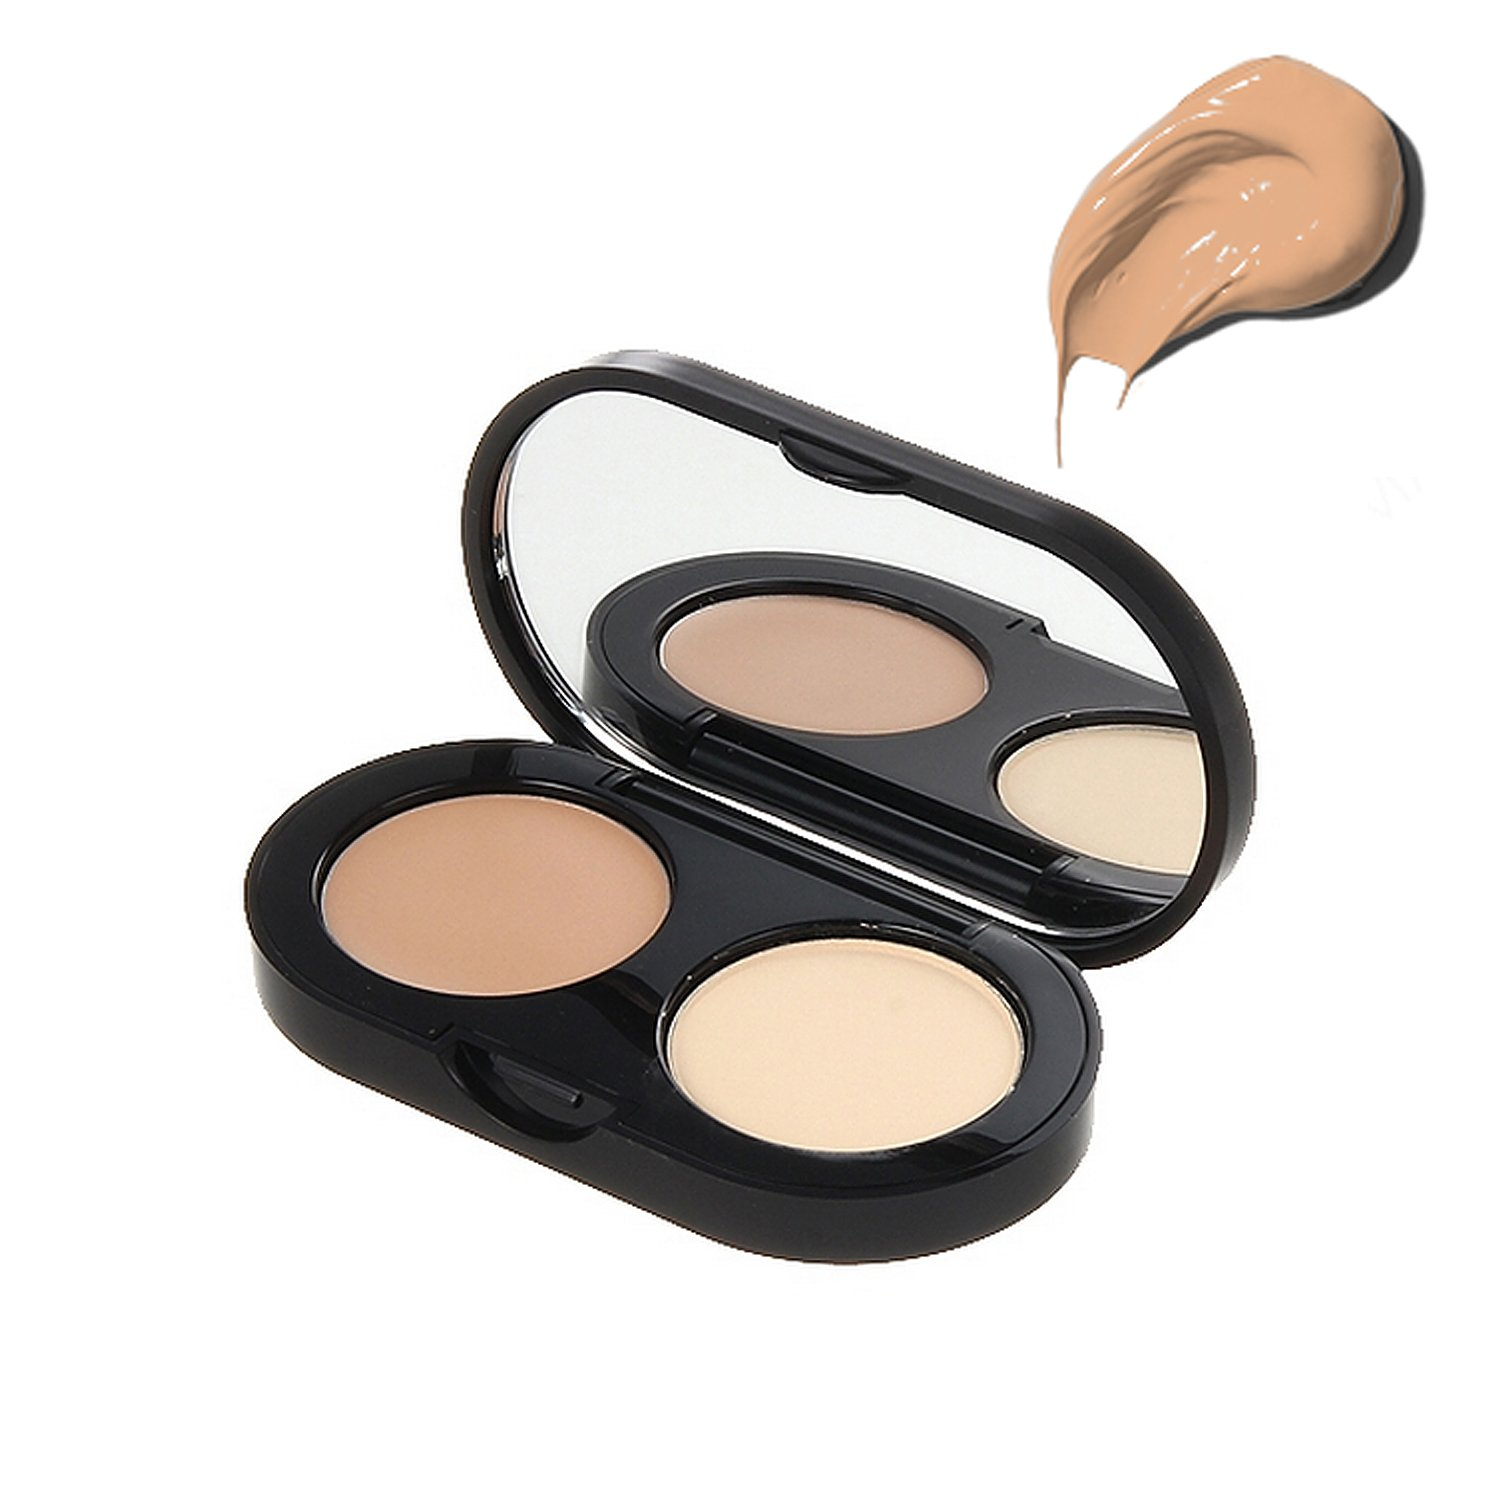 Bobbi Brown New Creamy Concealer Kit, 0.11 Ounce